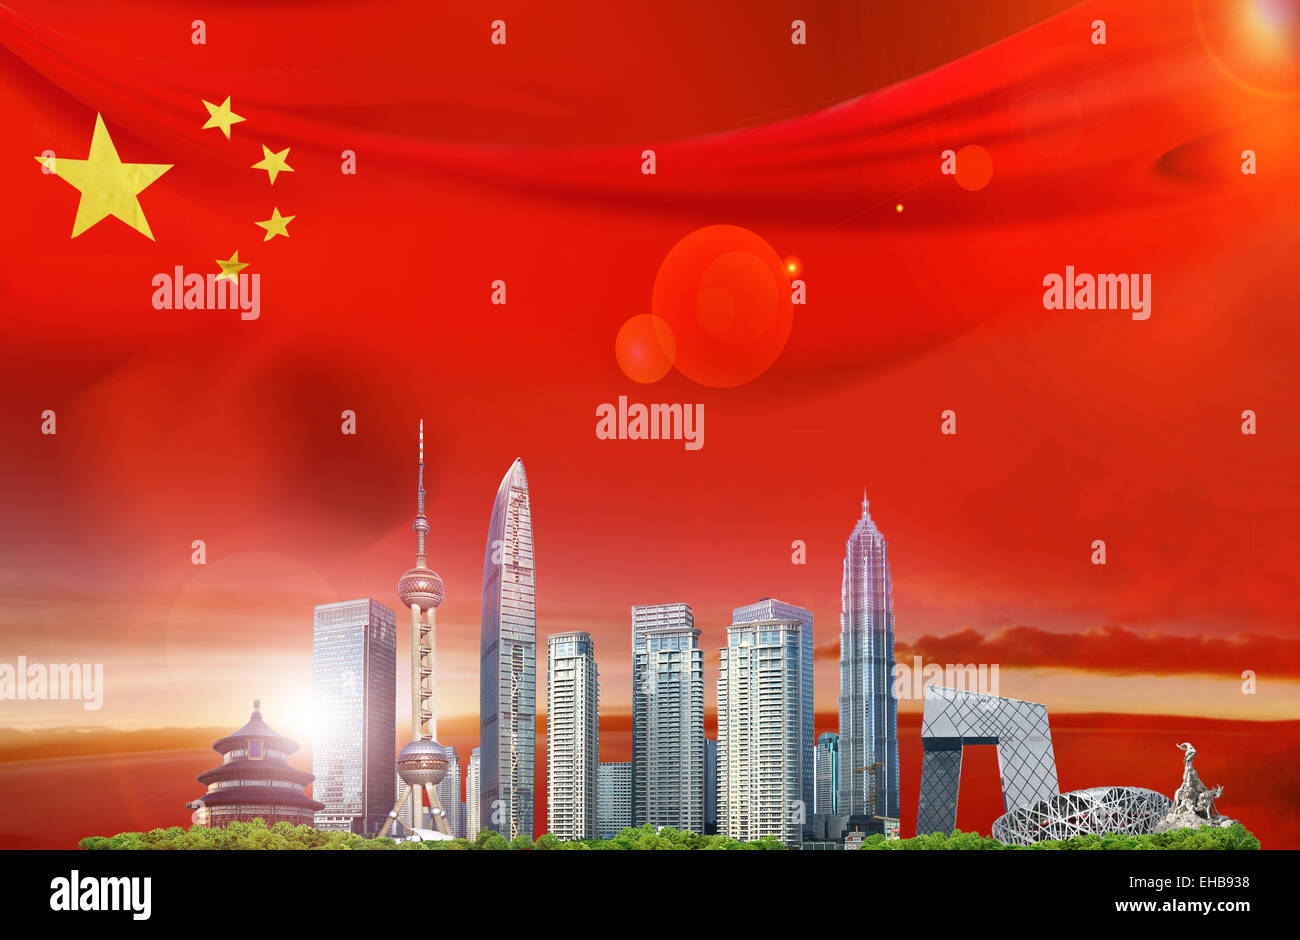 Under the red flag of China city landmarks - Stock Image